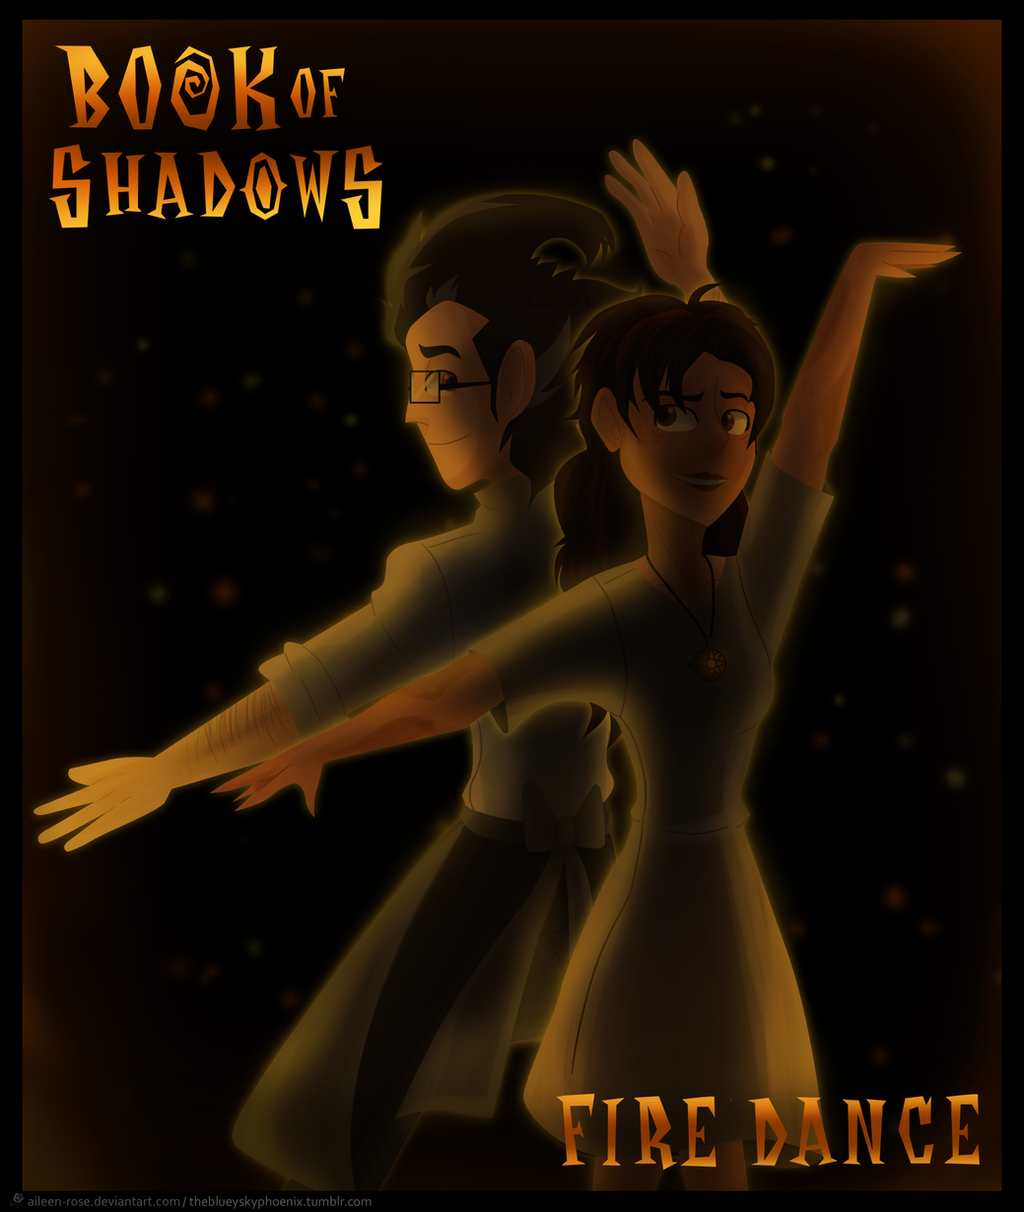 Book of Shadows: Fire Dance by Aileen-Rose